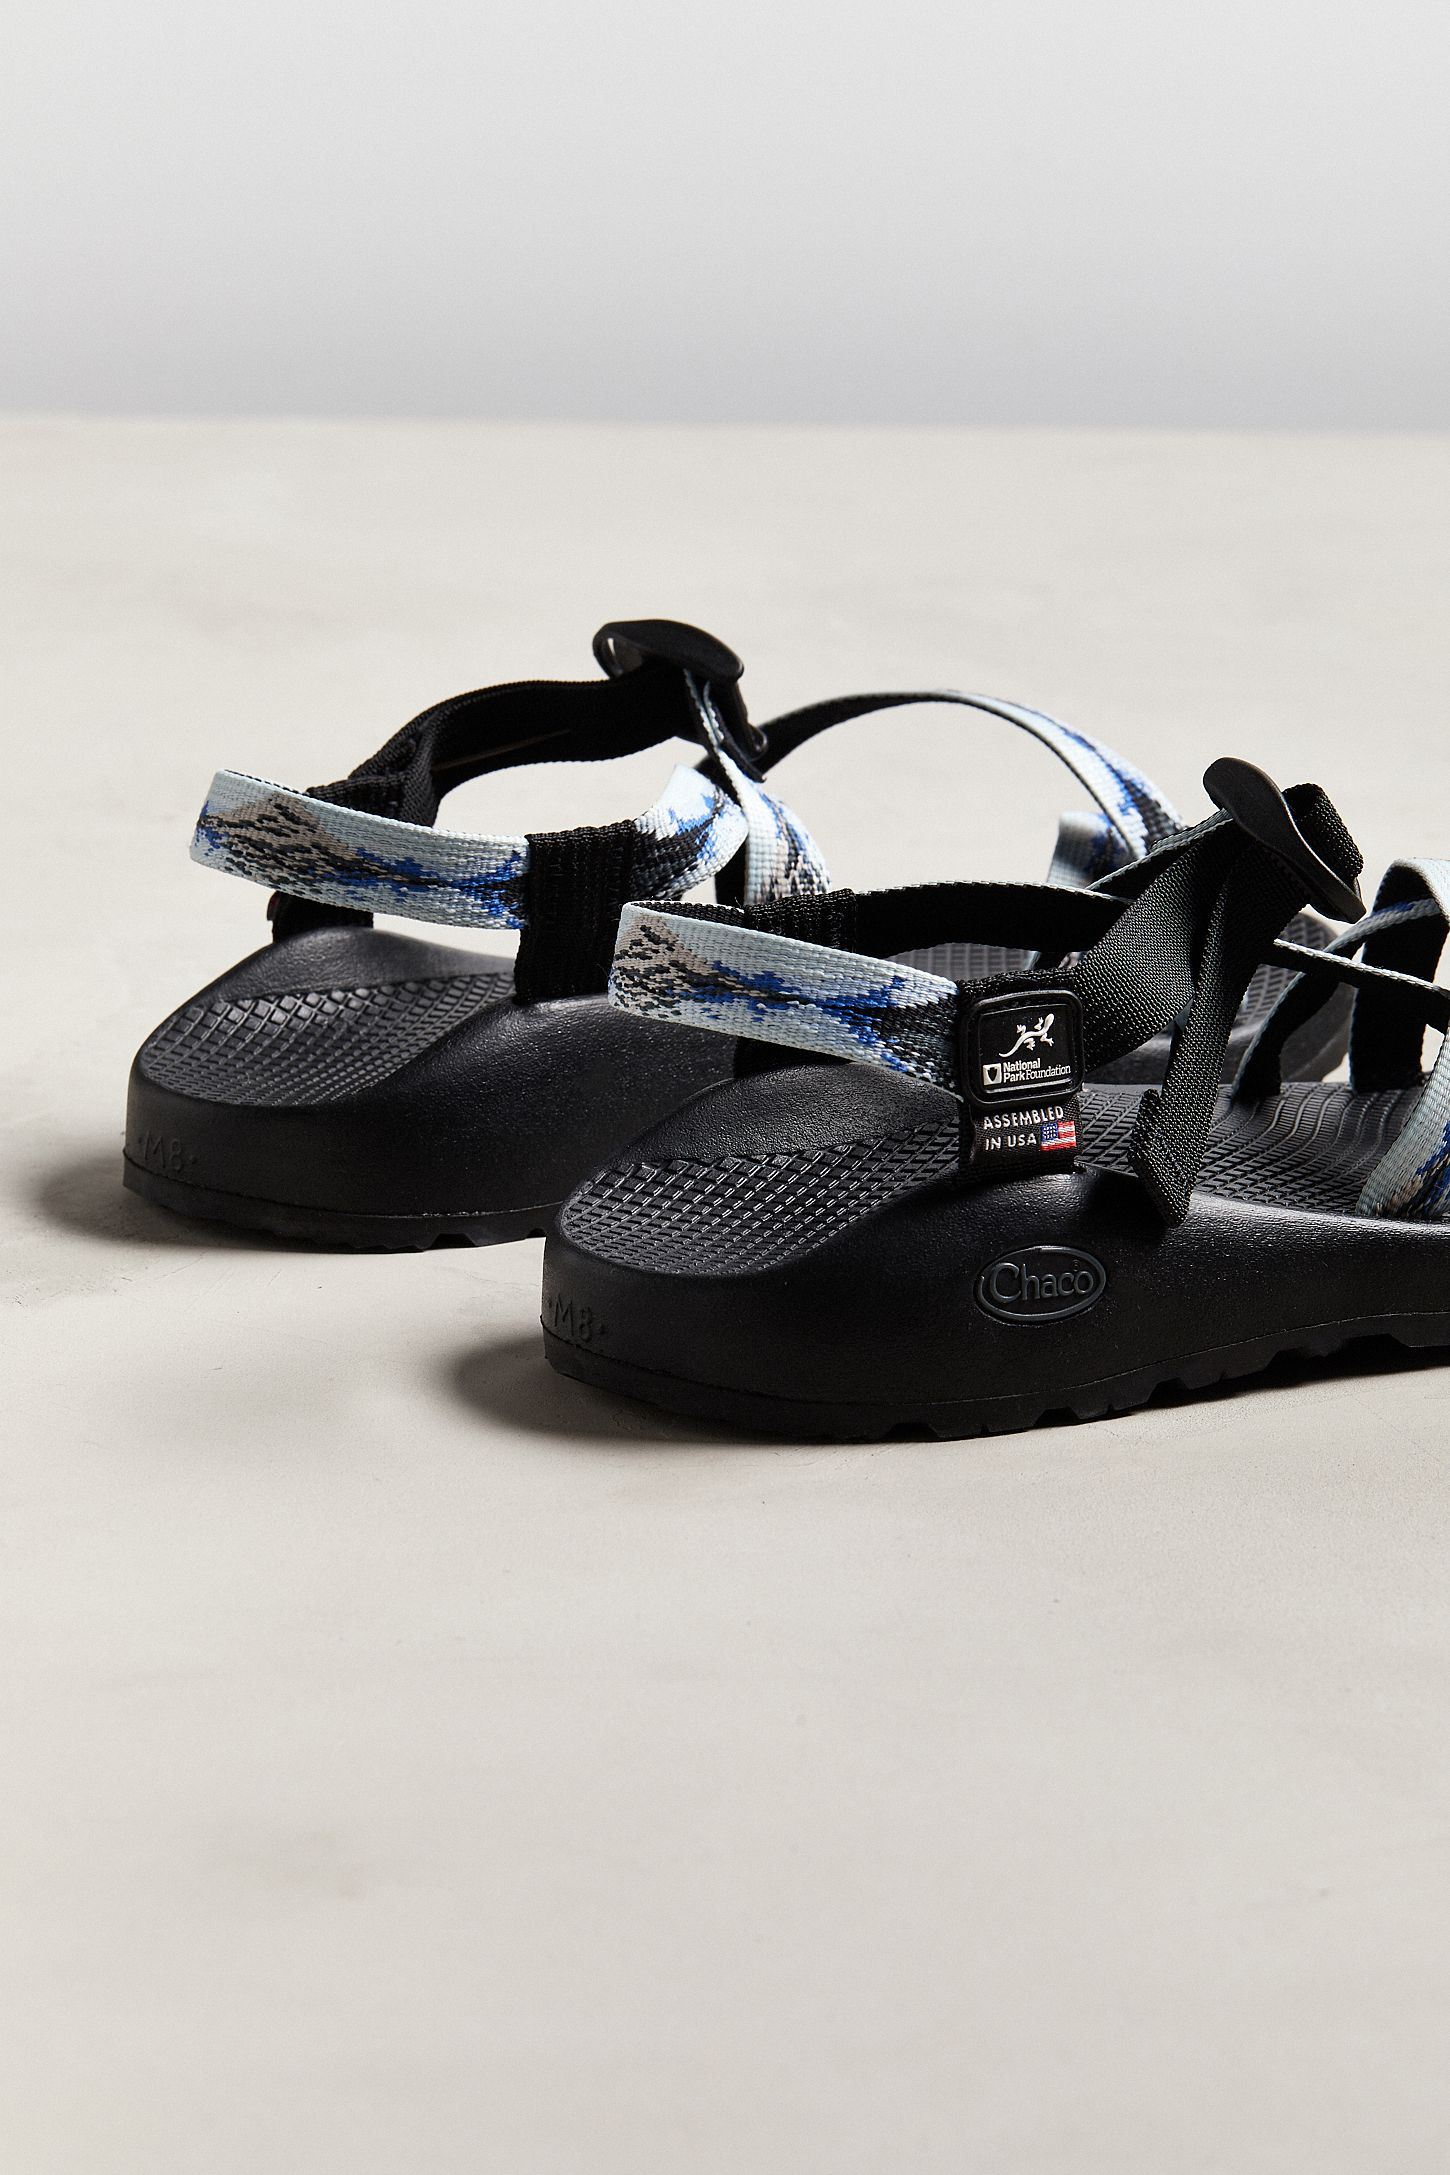 Chaco Z/1 National Parks Foundation Glacier Sandal u3ghQR